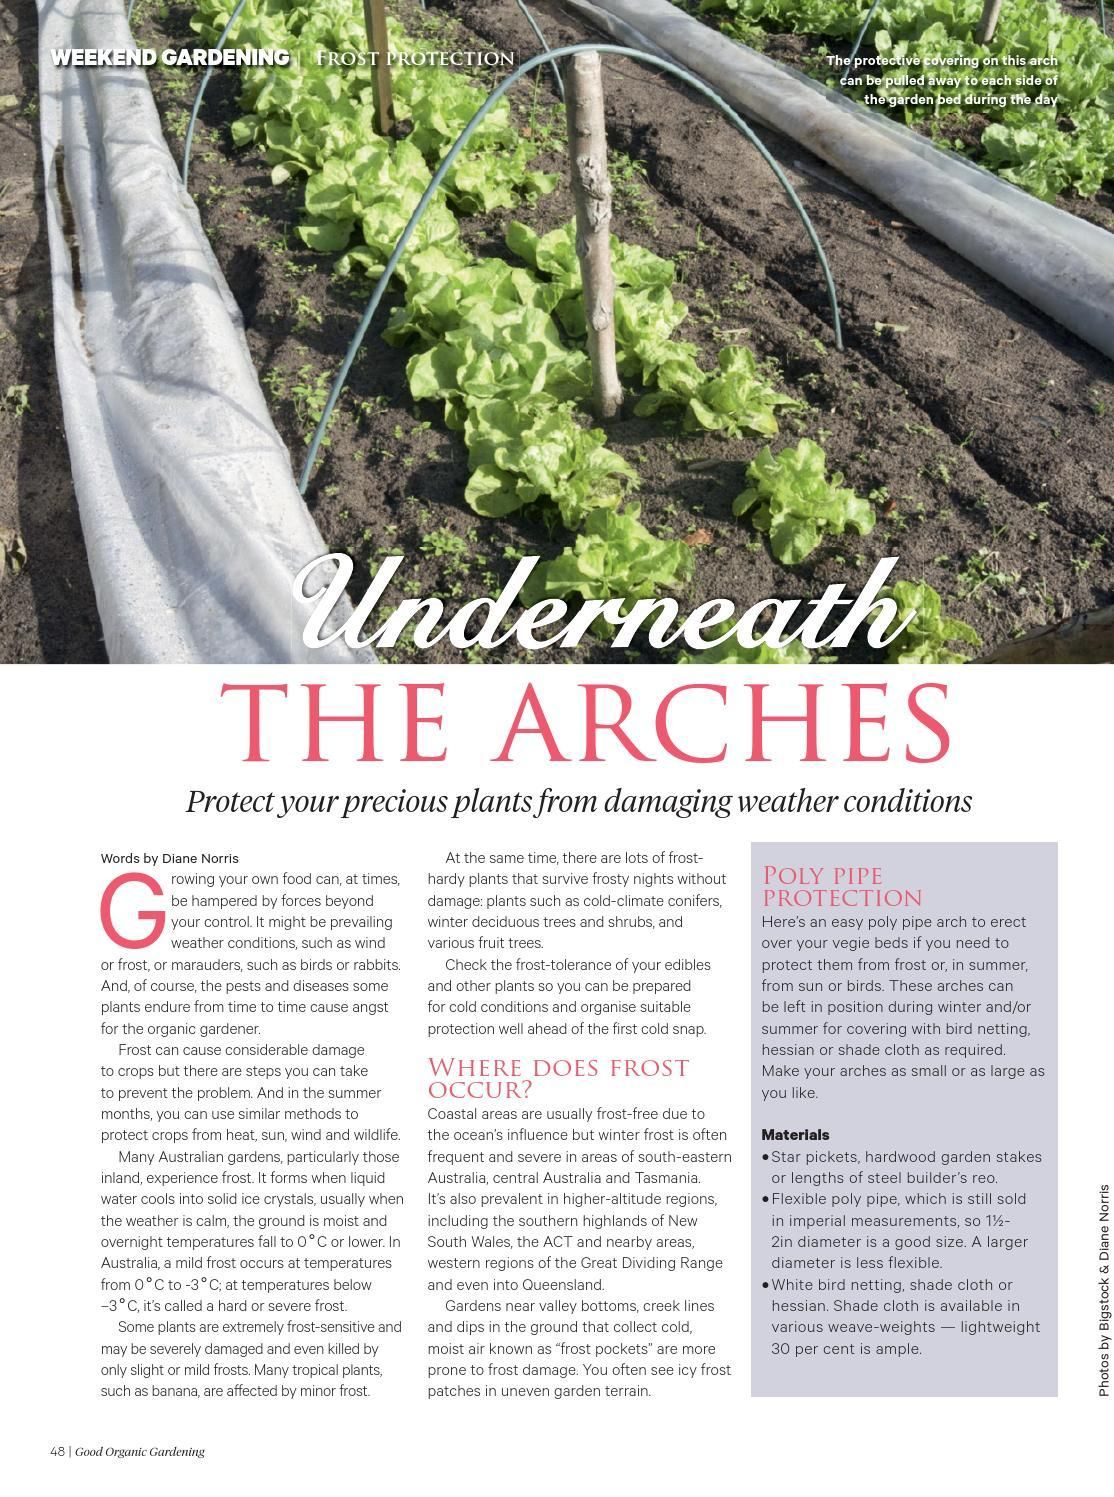 #ClippedOnIssuu from Good Organic Gardening #5.1 MAY / JUNE